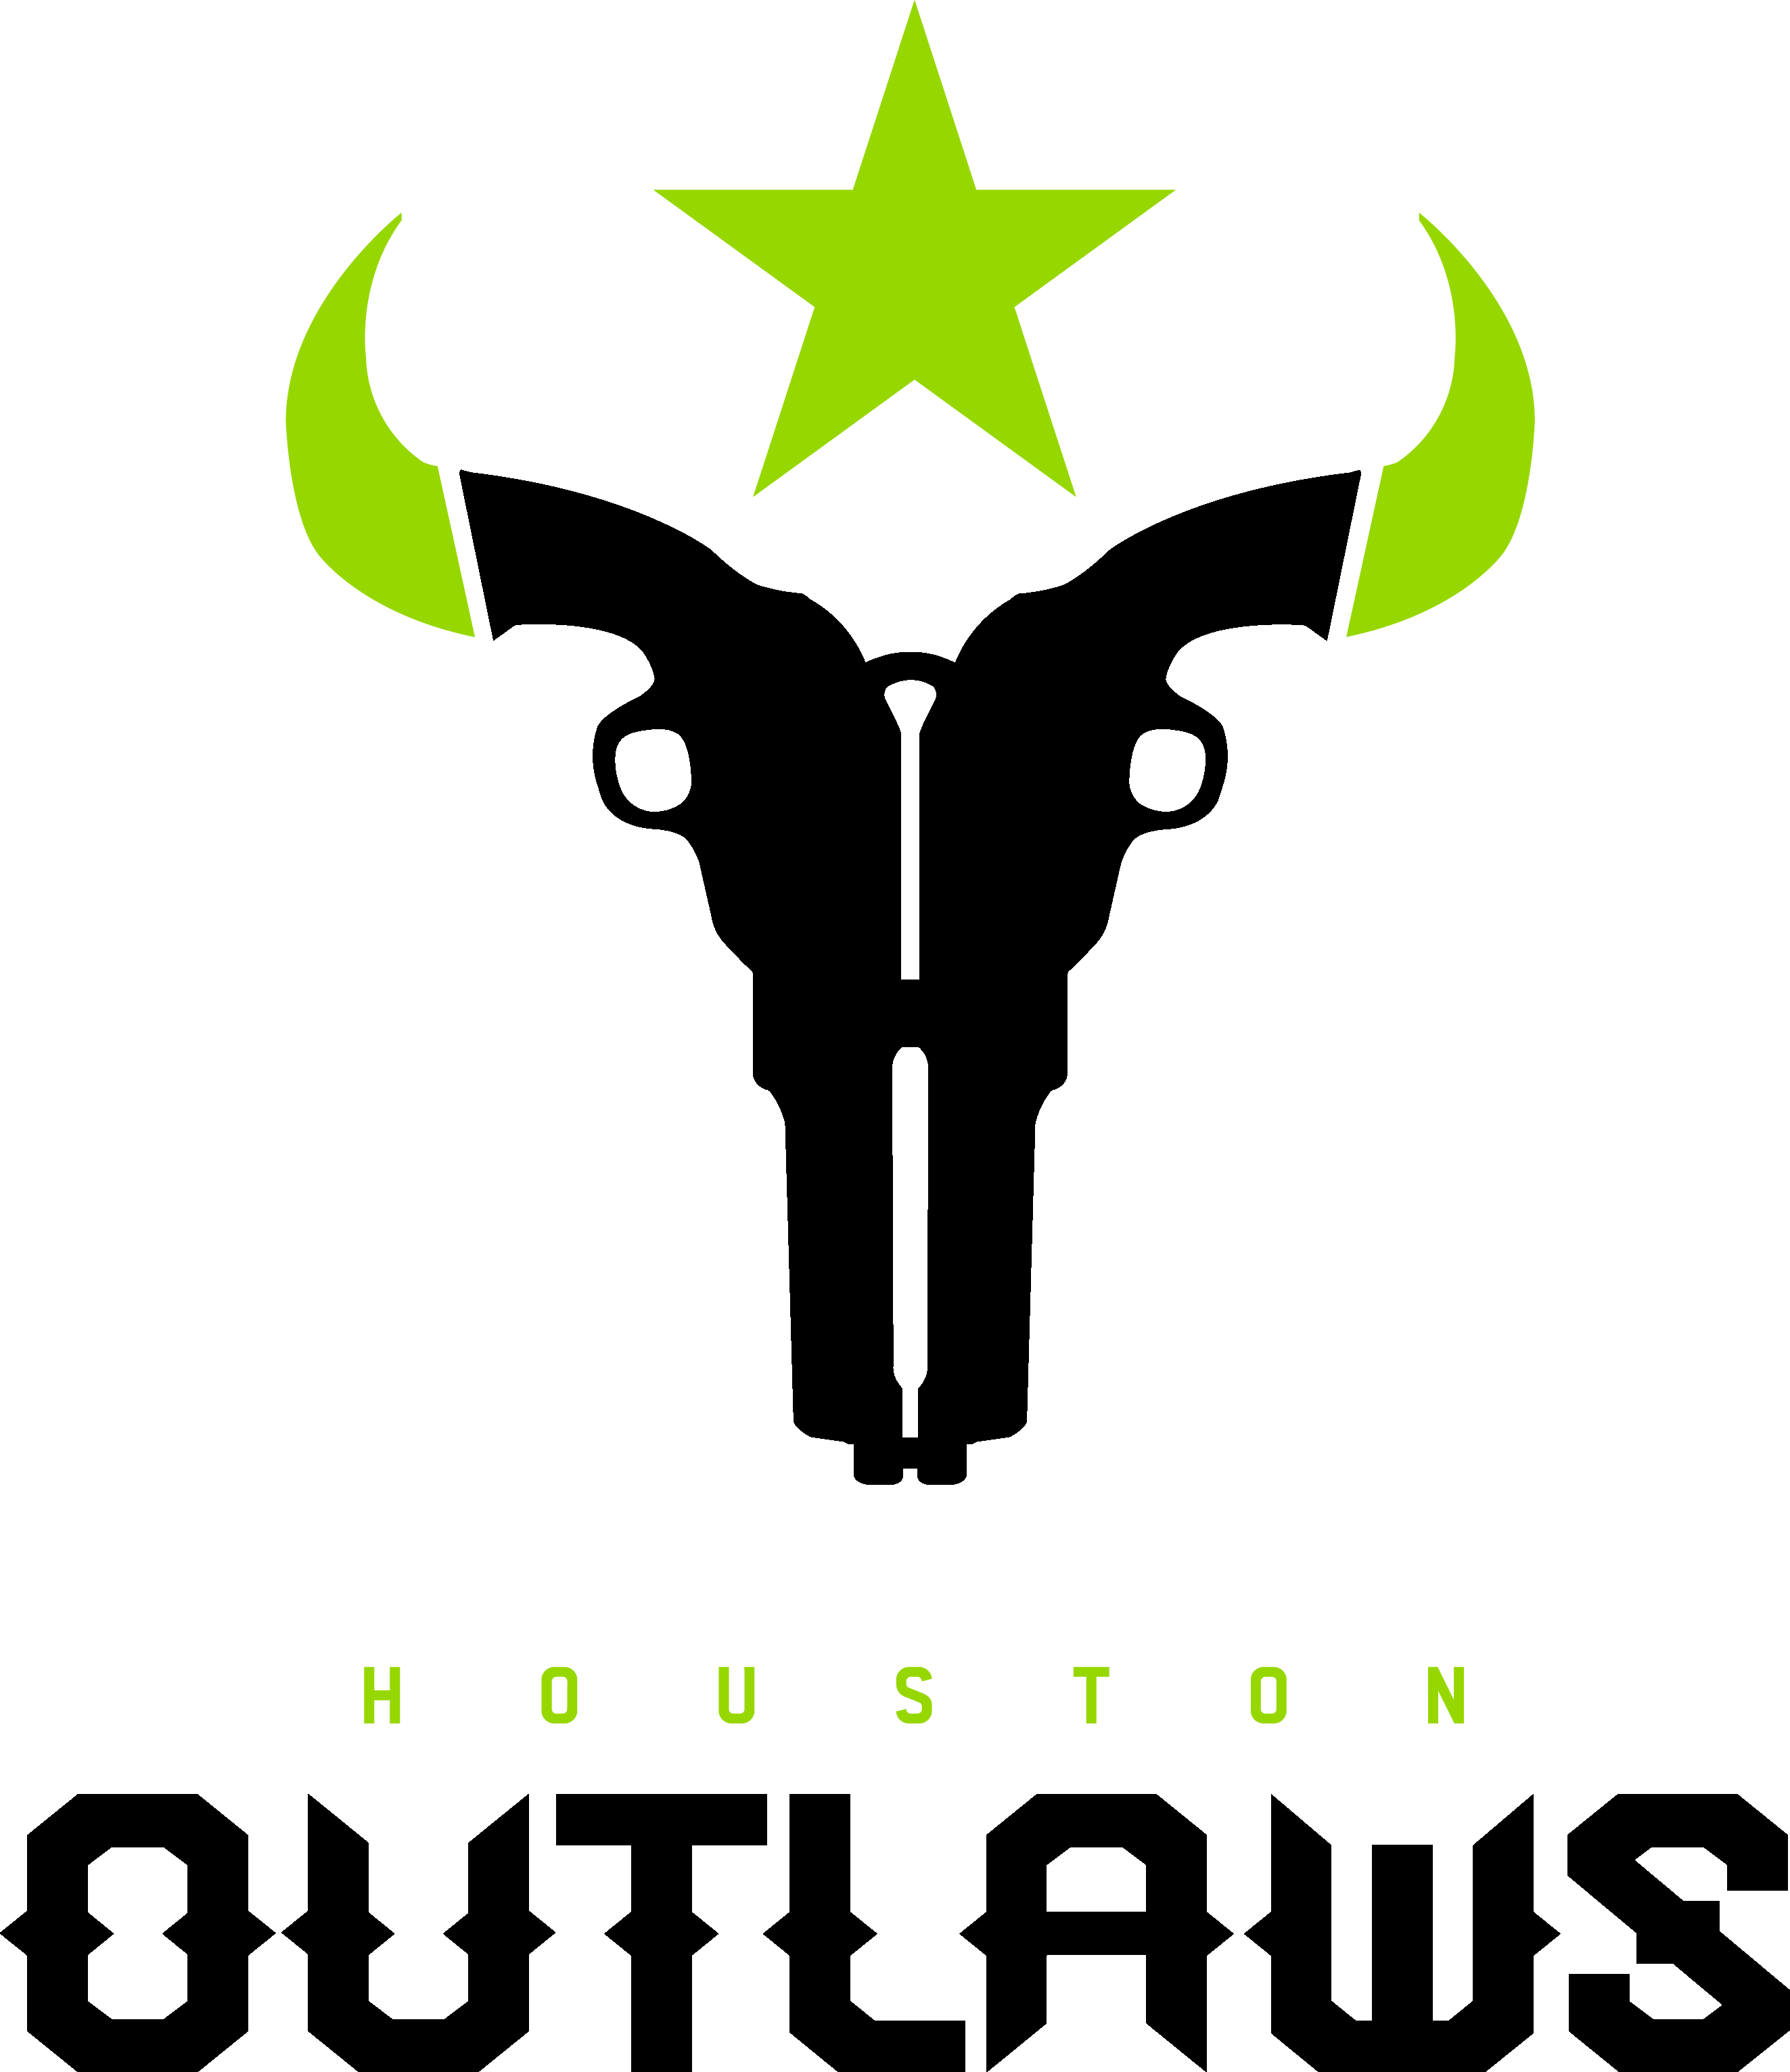 Houston Outlaws Overwatch Team